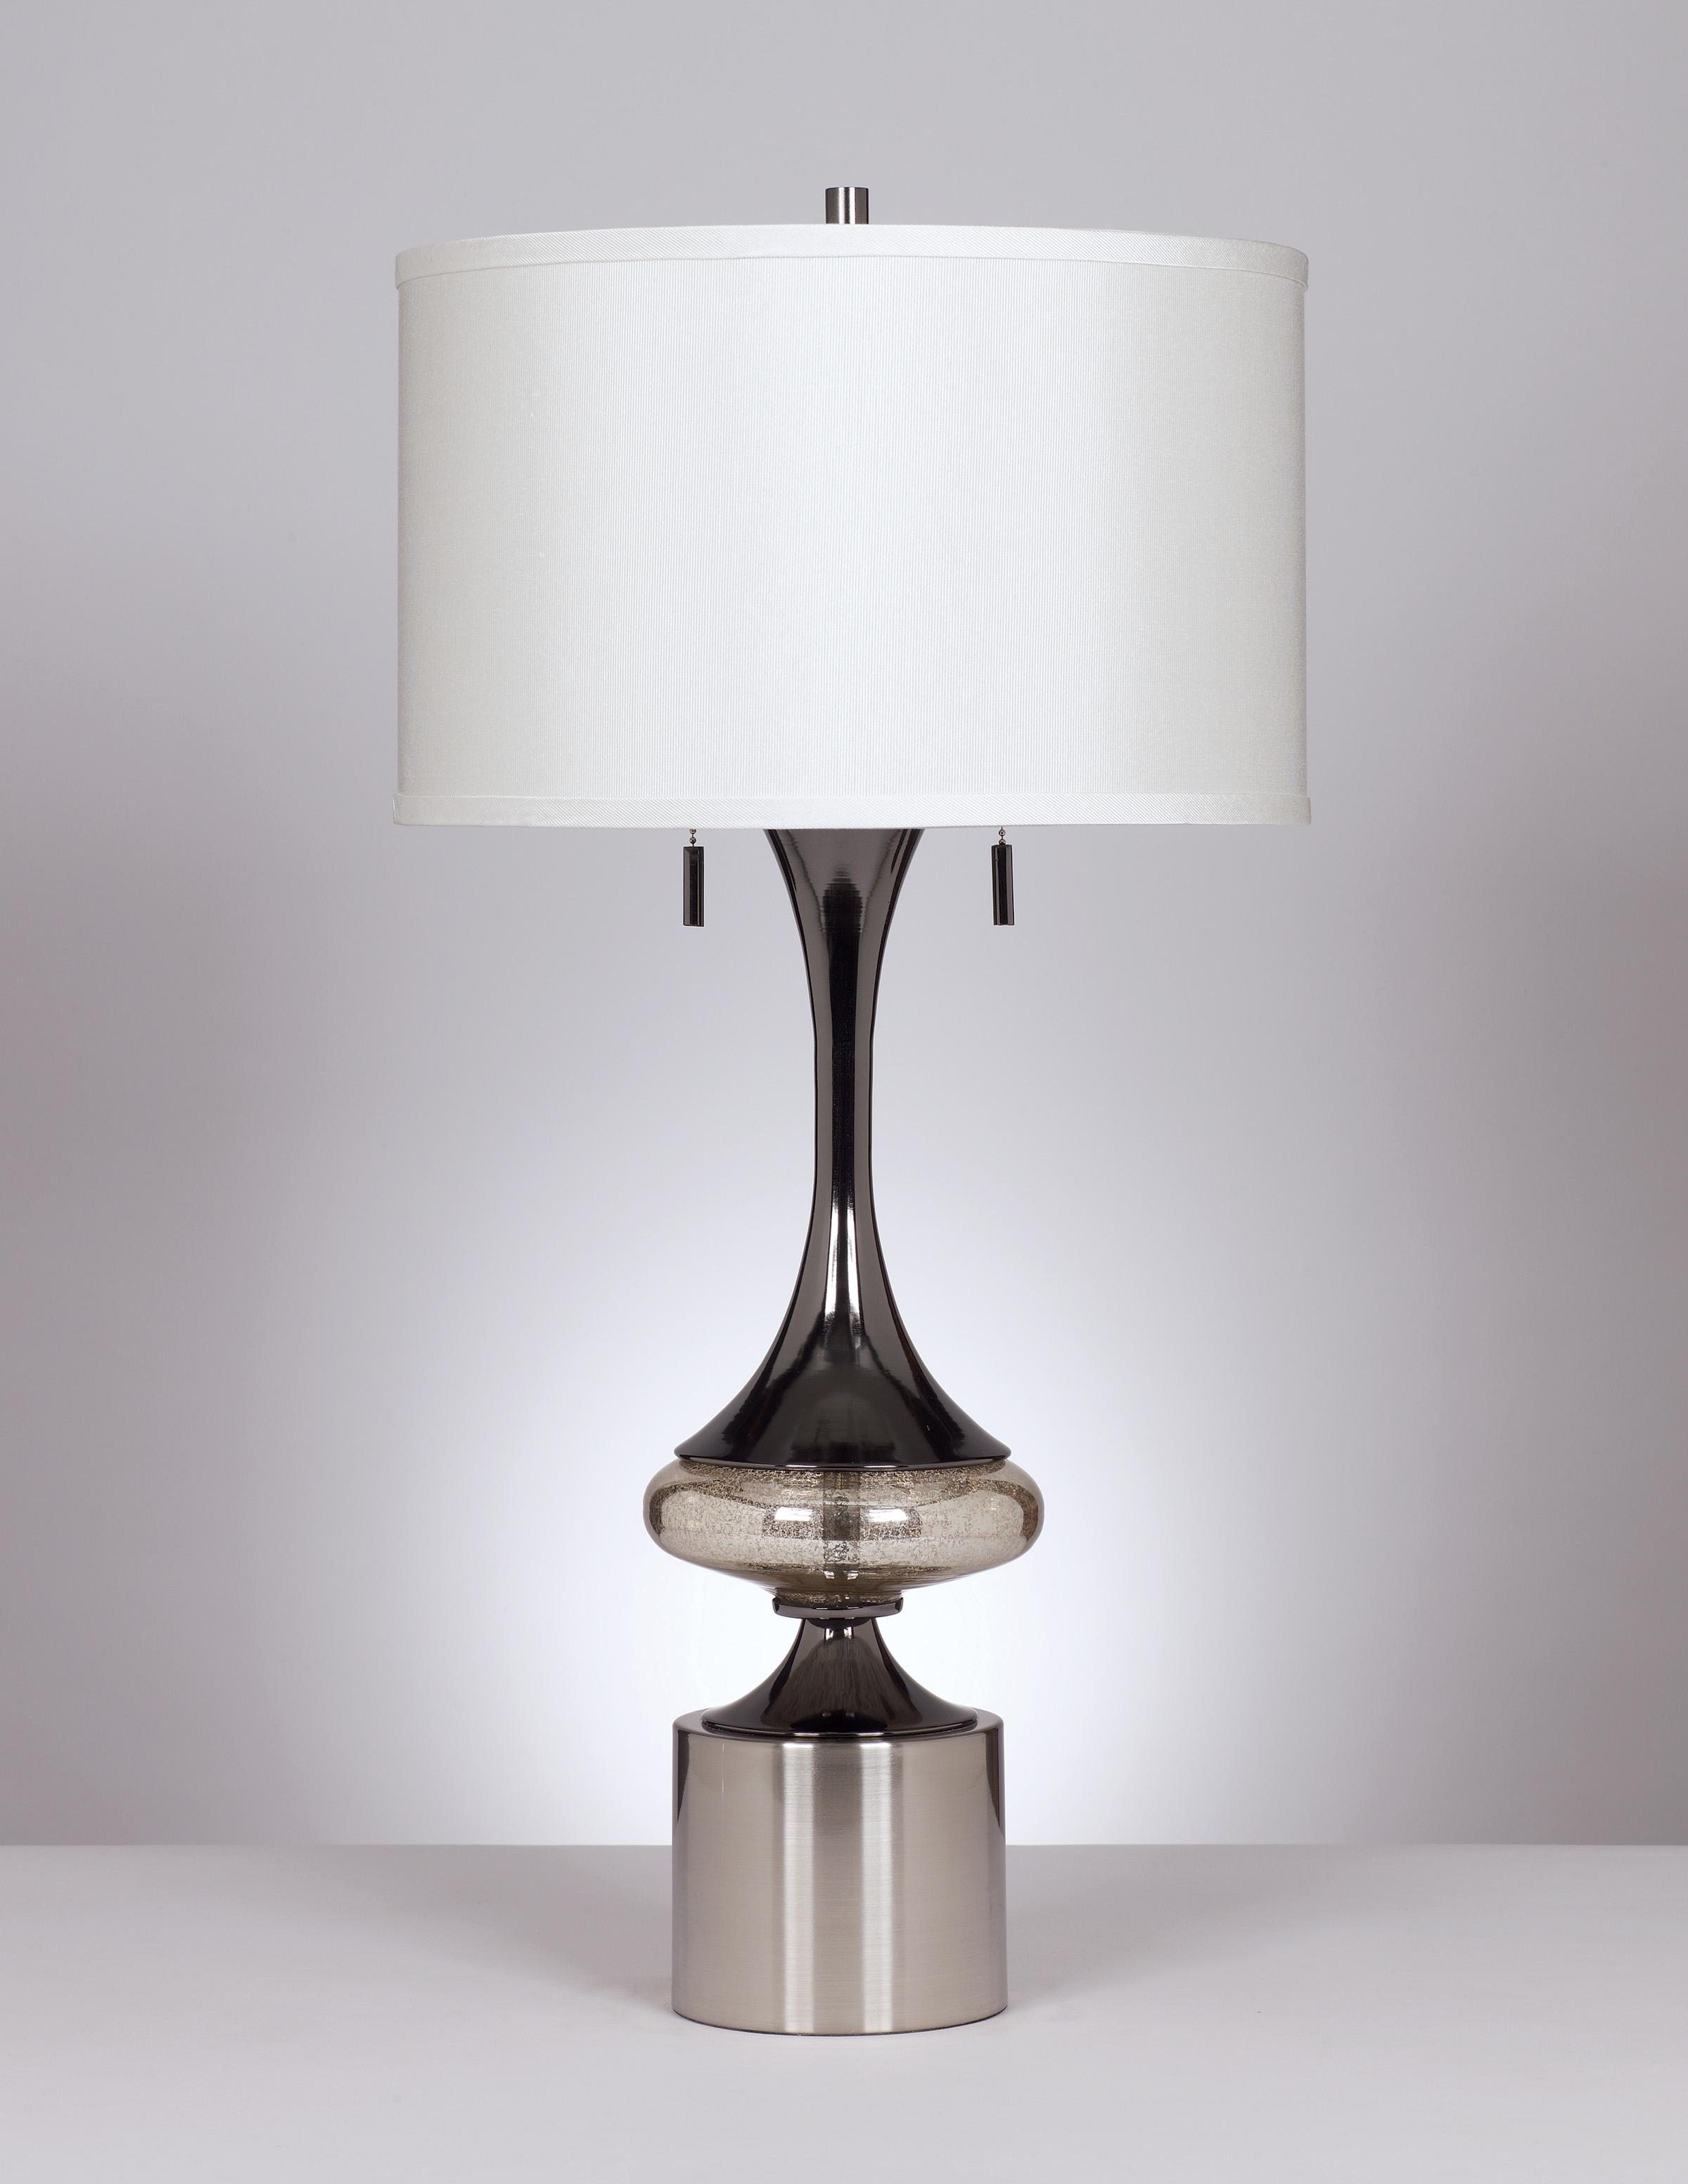 Signature Design by Ashley Lamps - Contemporary Set of 2 Marsha Table Lamps - Item Number: L433294